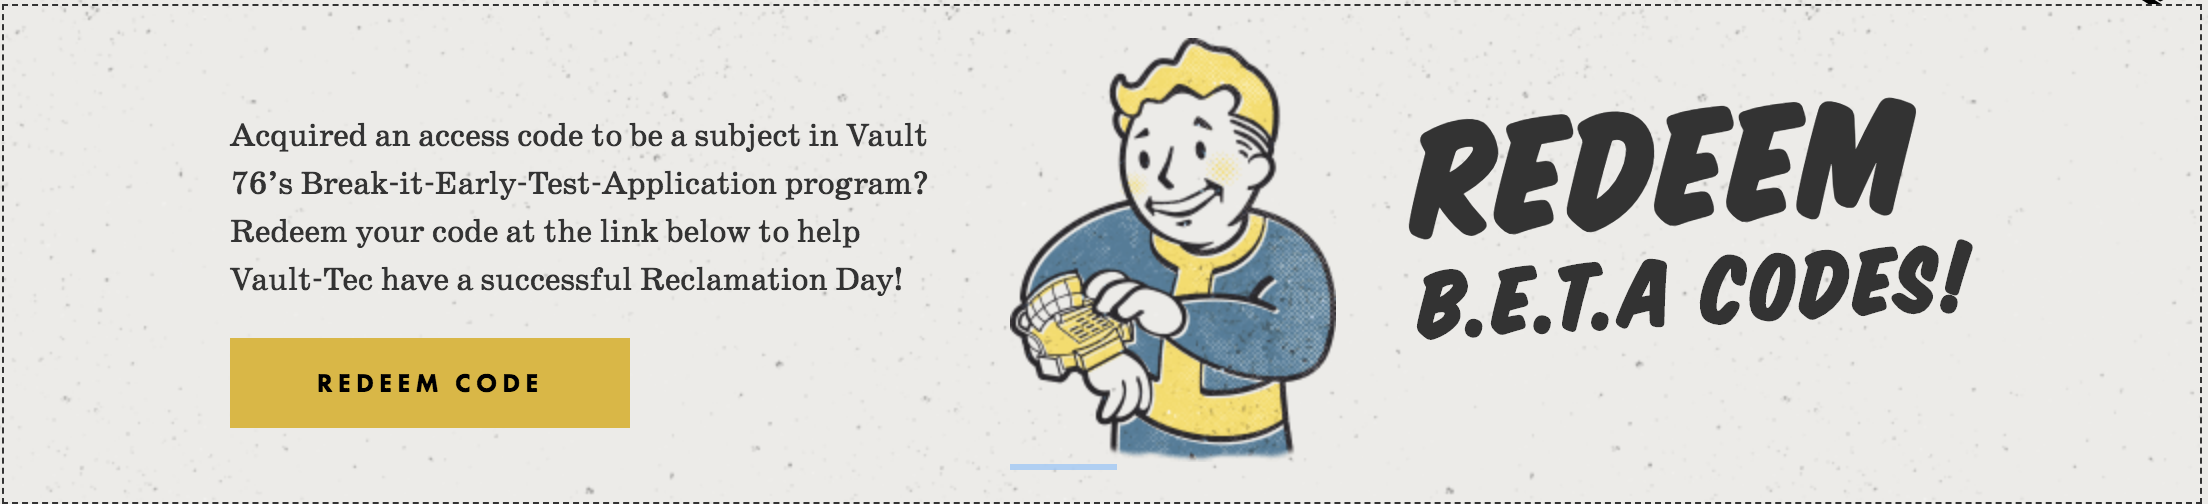 Fallout 76 Beta Release Date: Codes Are Going Out, But Watch